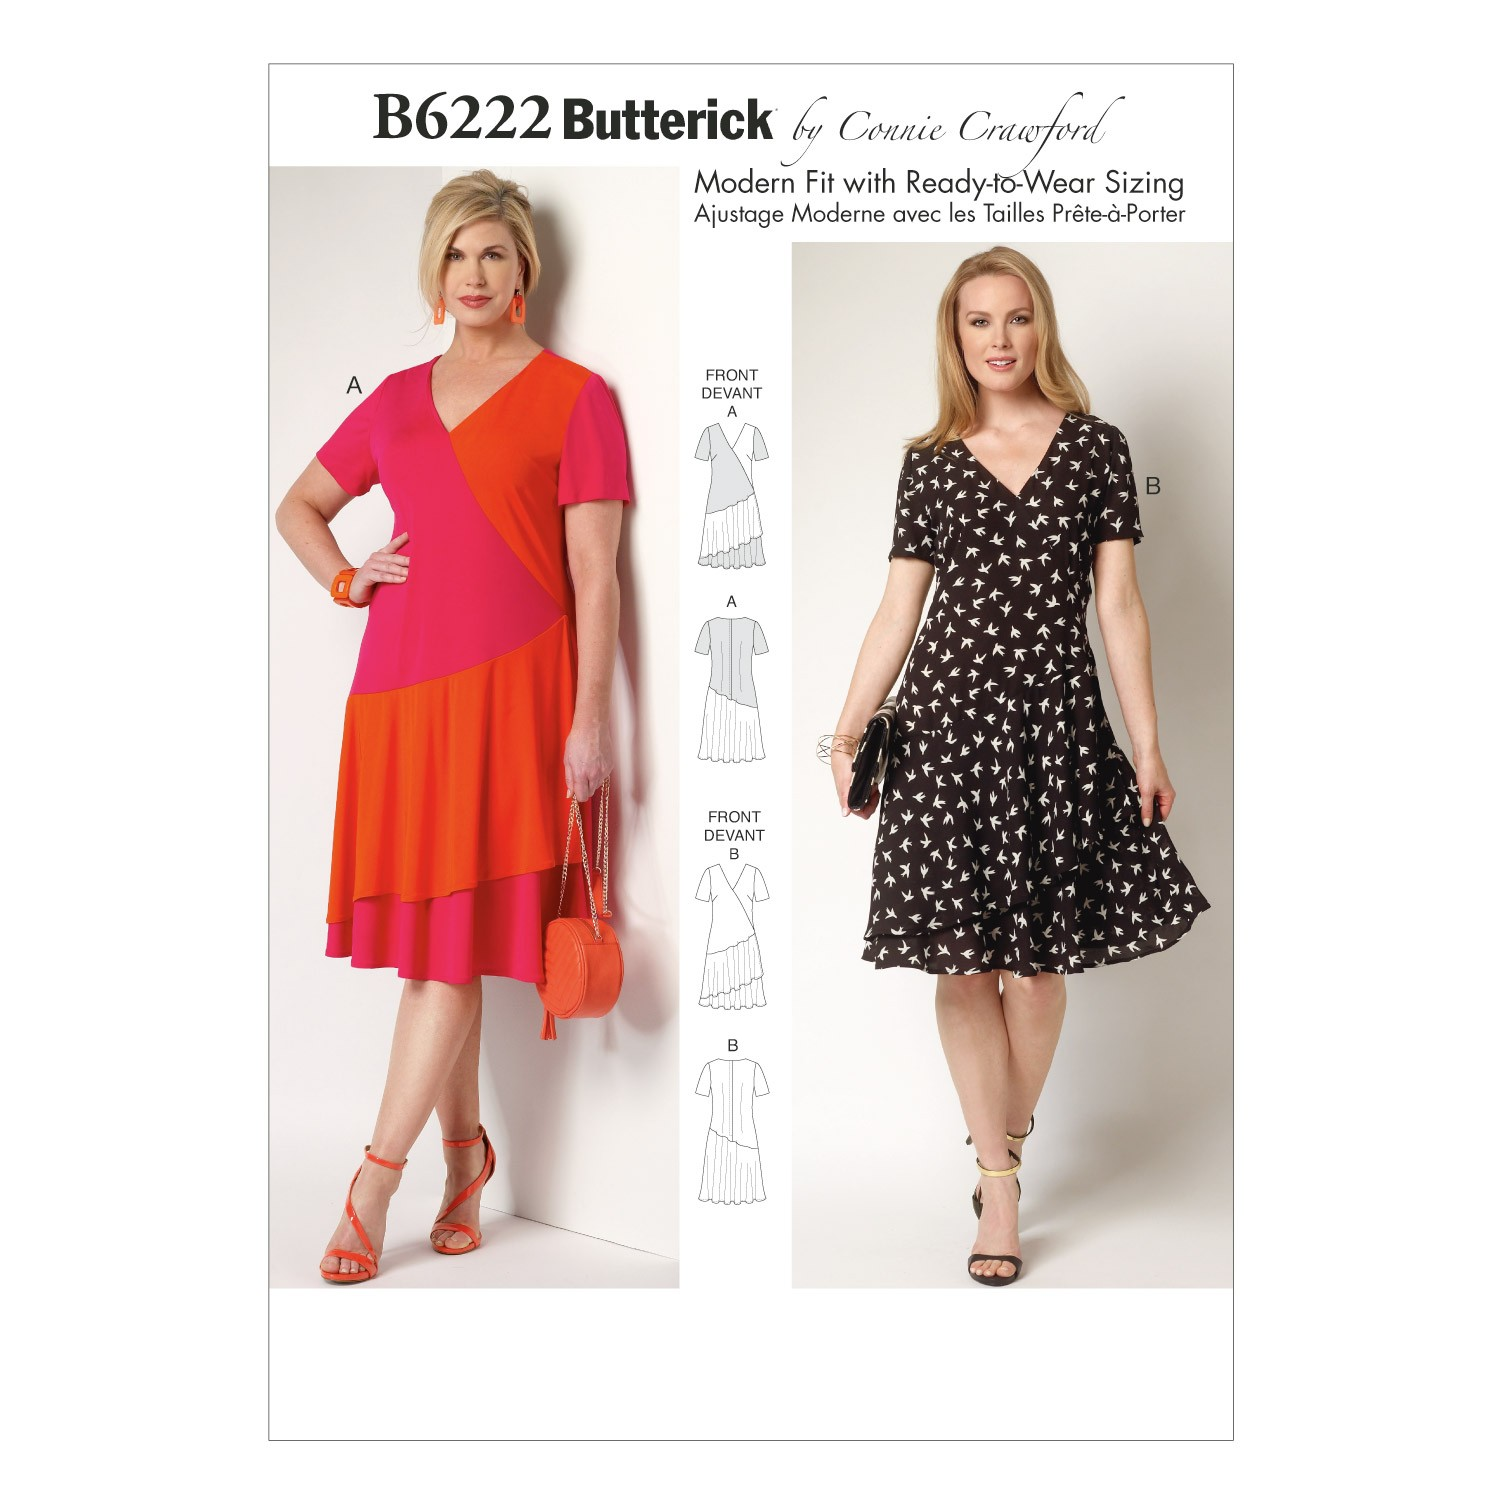 Butterick Sewing Pattern 6222 Misses' Asymmetrical Dress